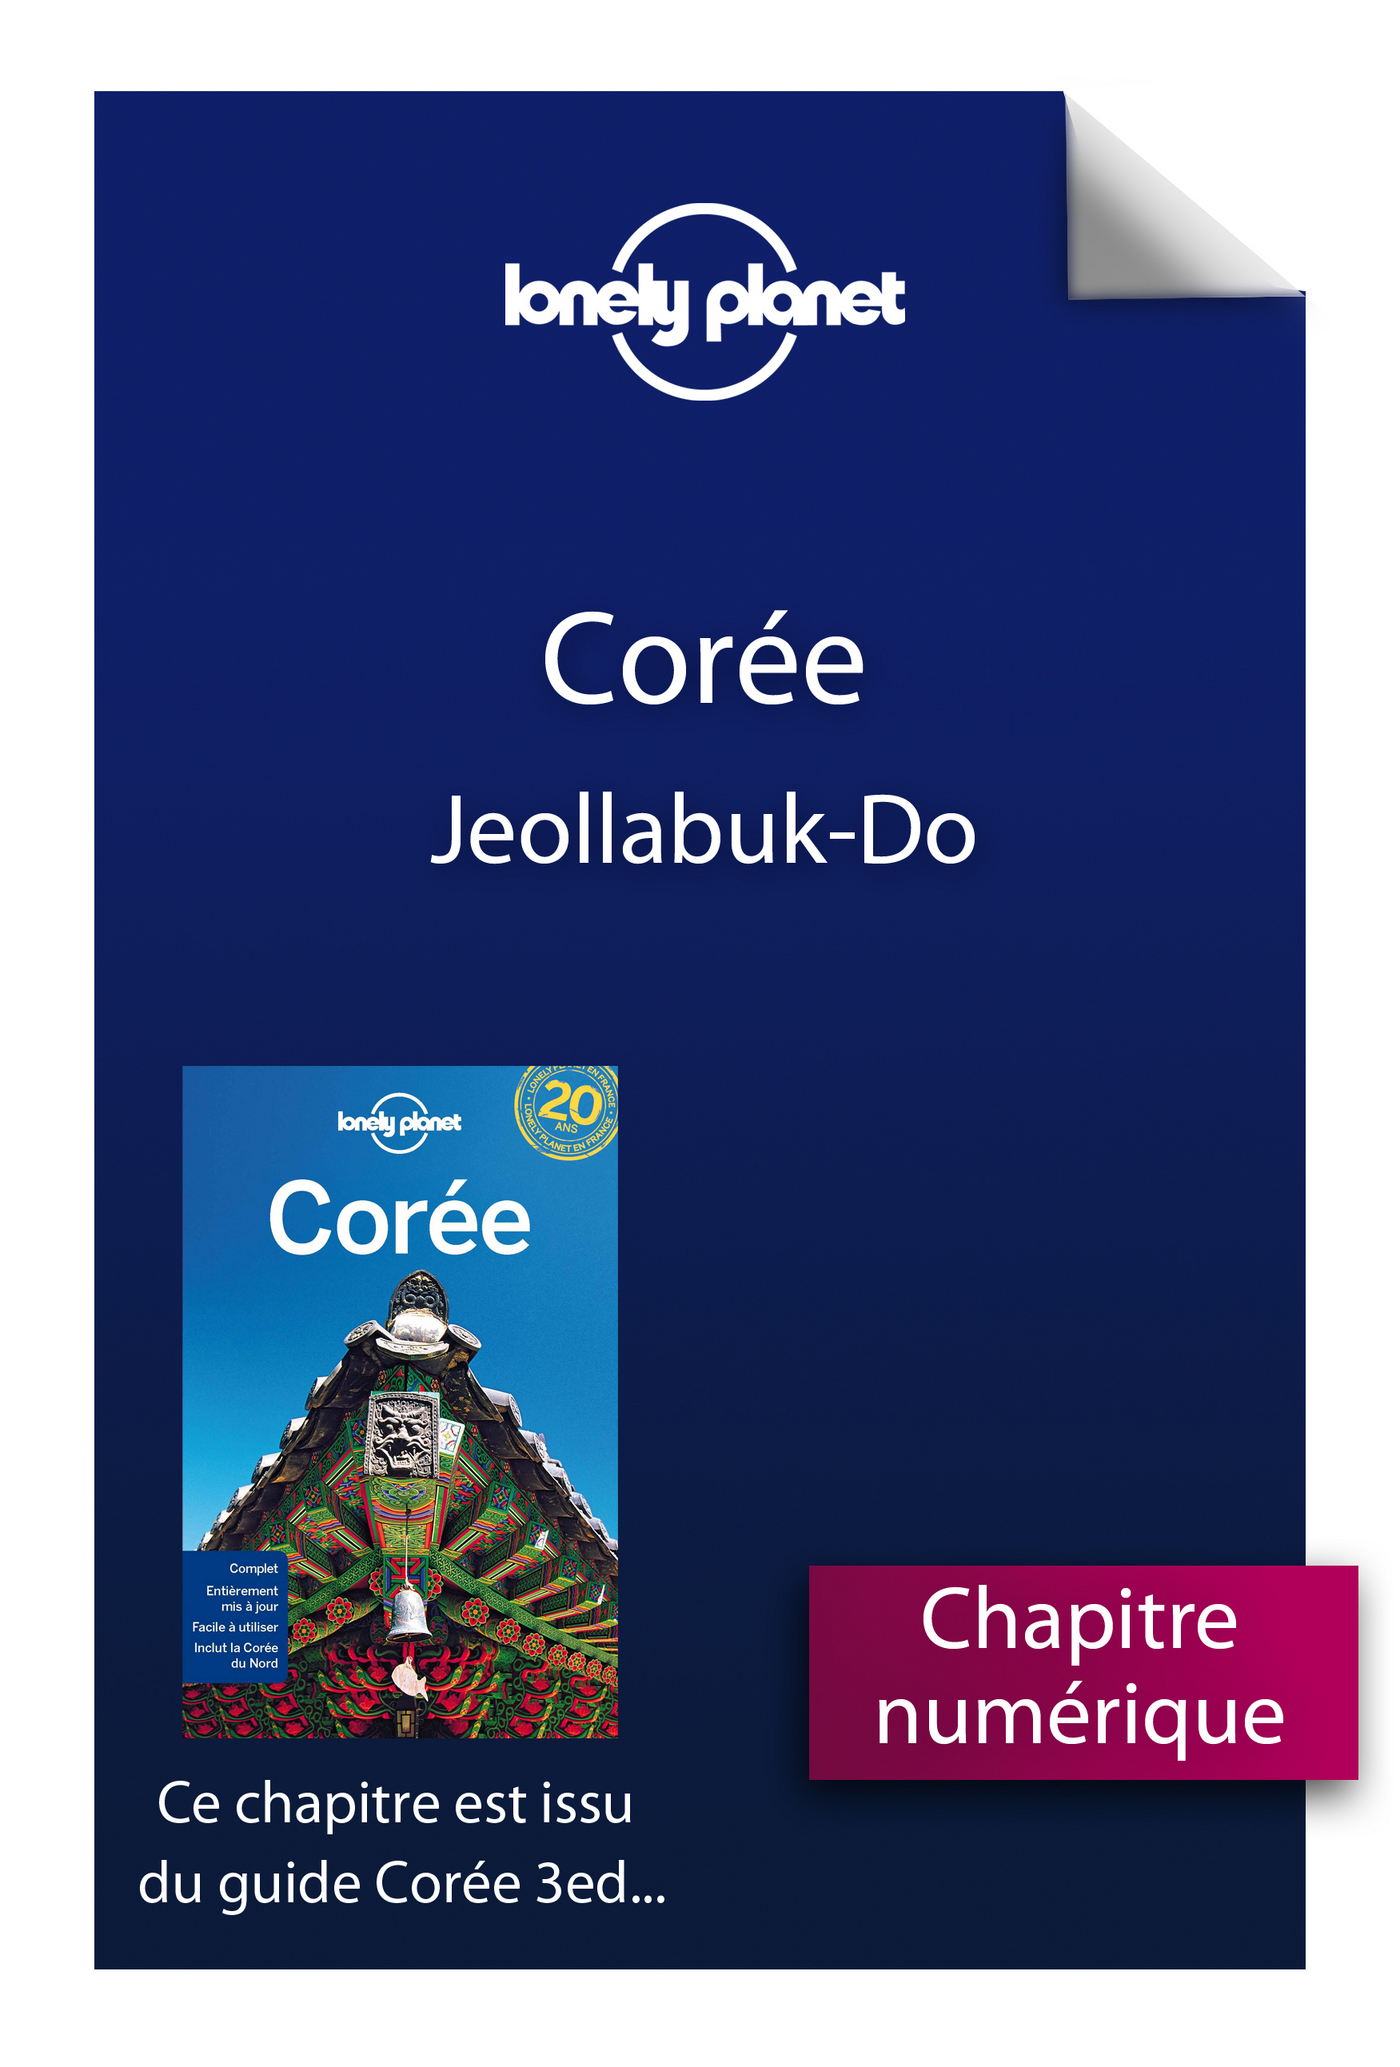 Corée 3 - Jeollabuk-Do